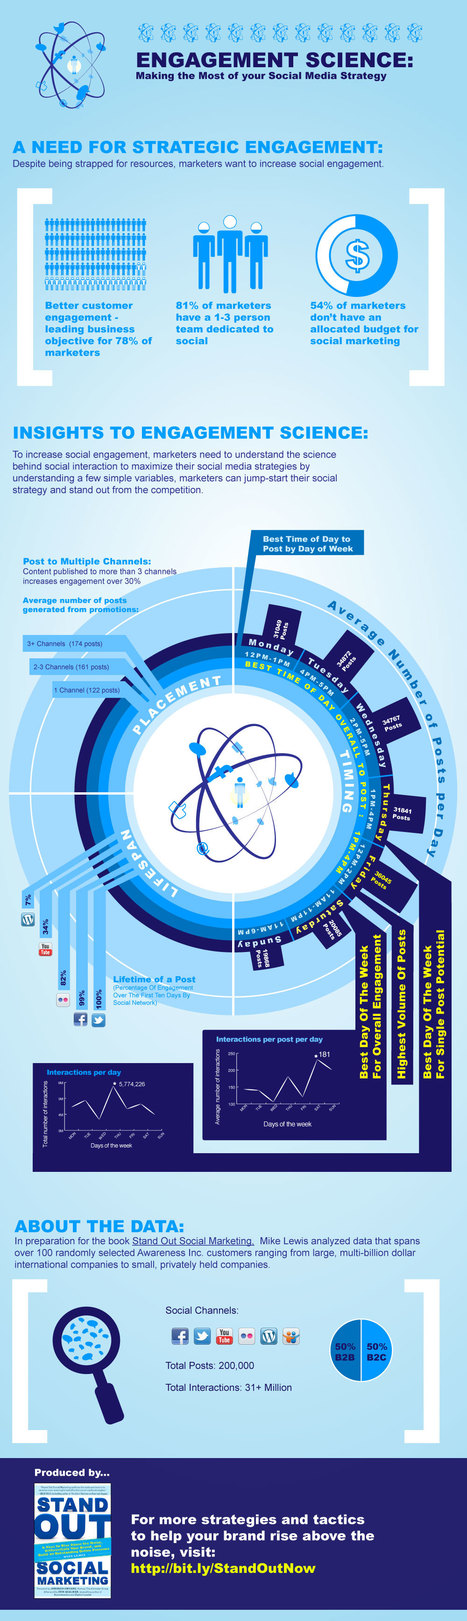 Engagement Science: Making the Most of Your Social Media Strategy (Infographic) | Yeni Medya | Scoop.it